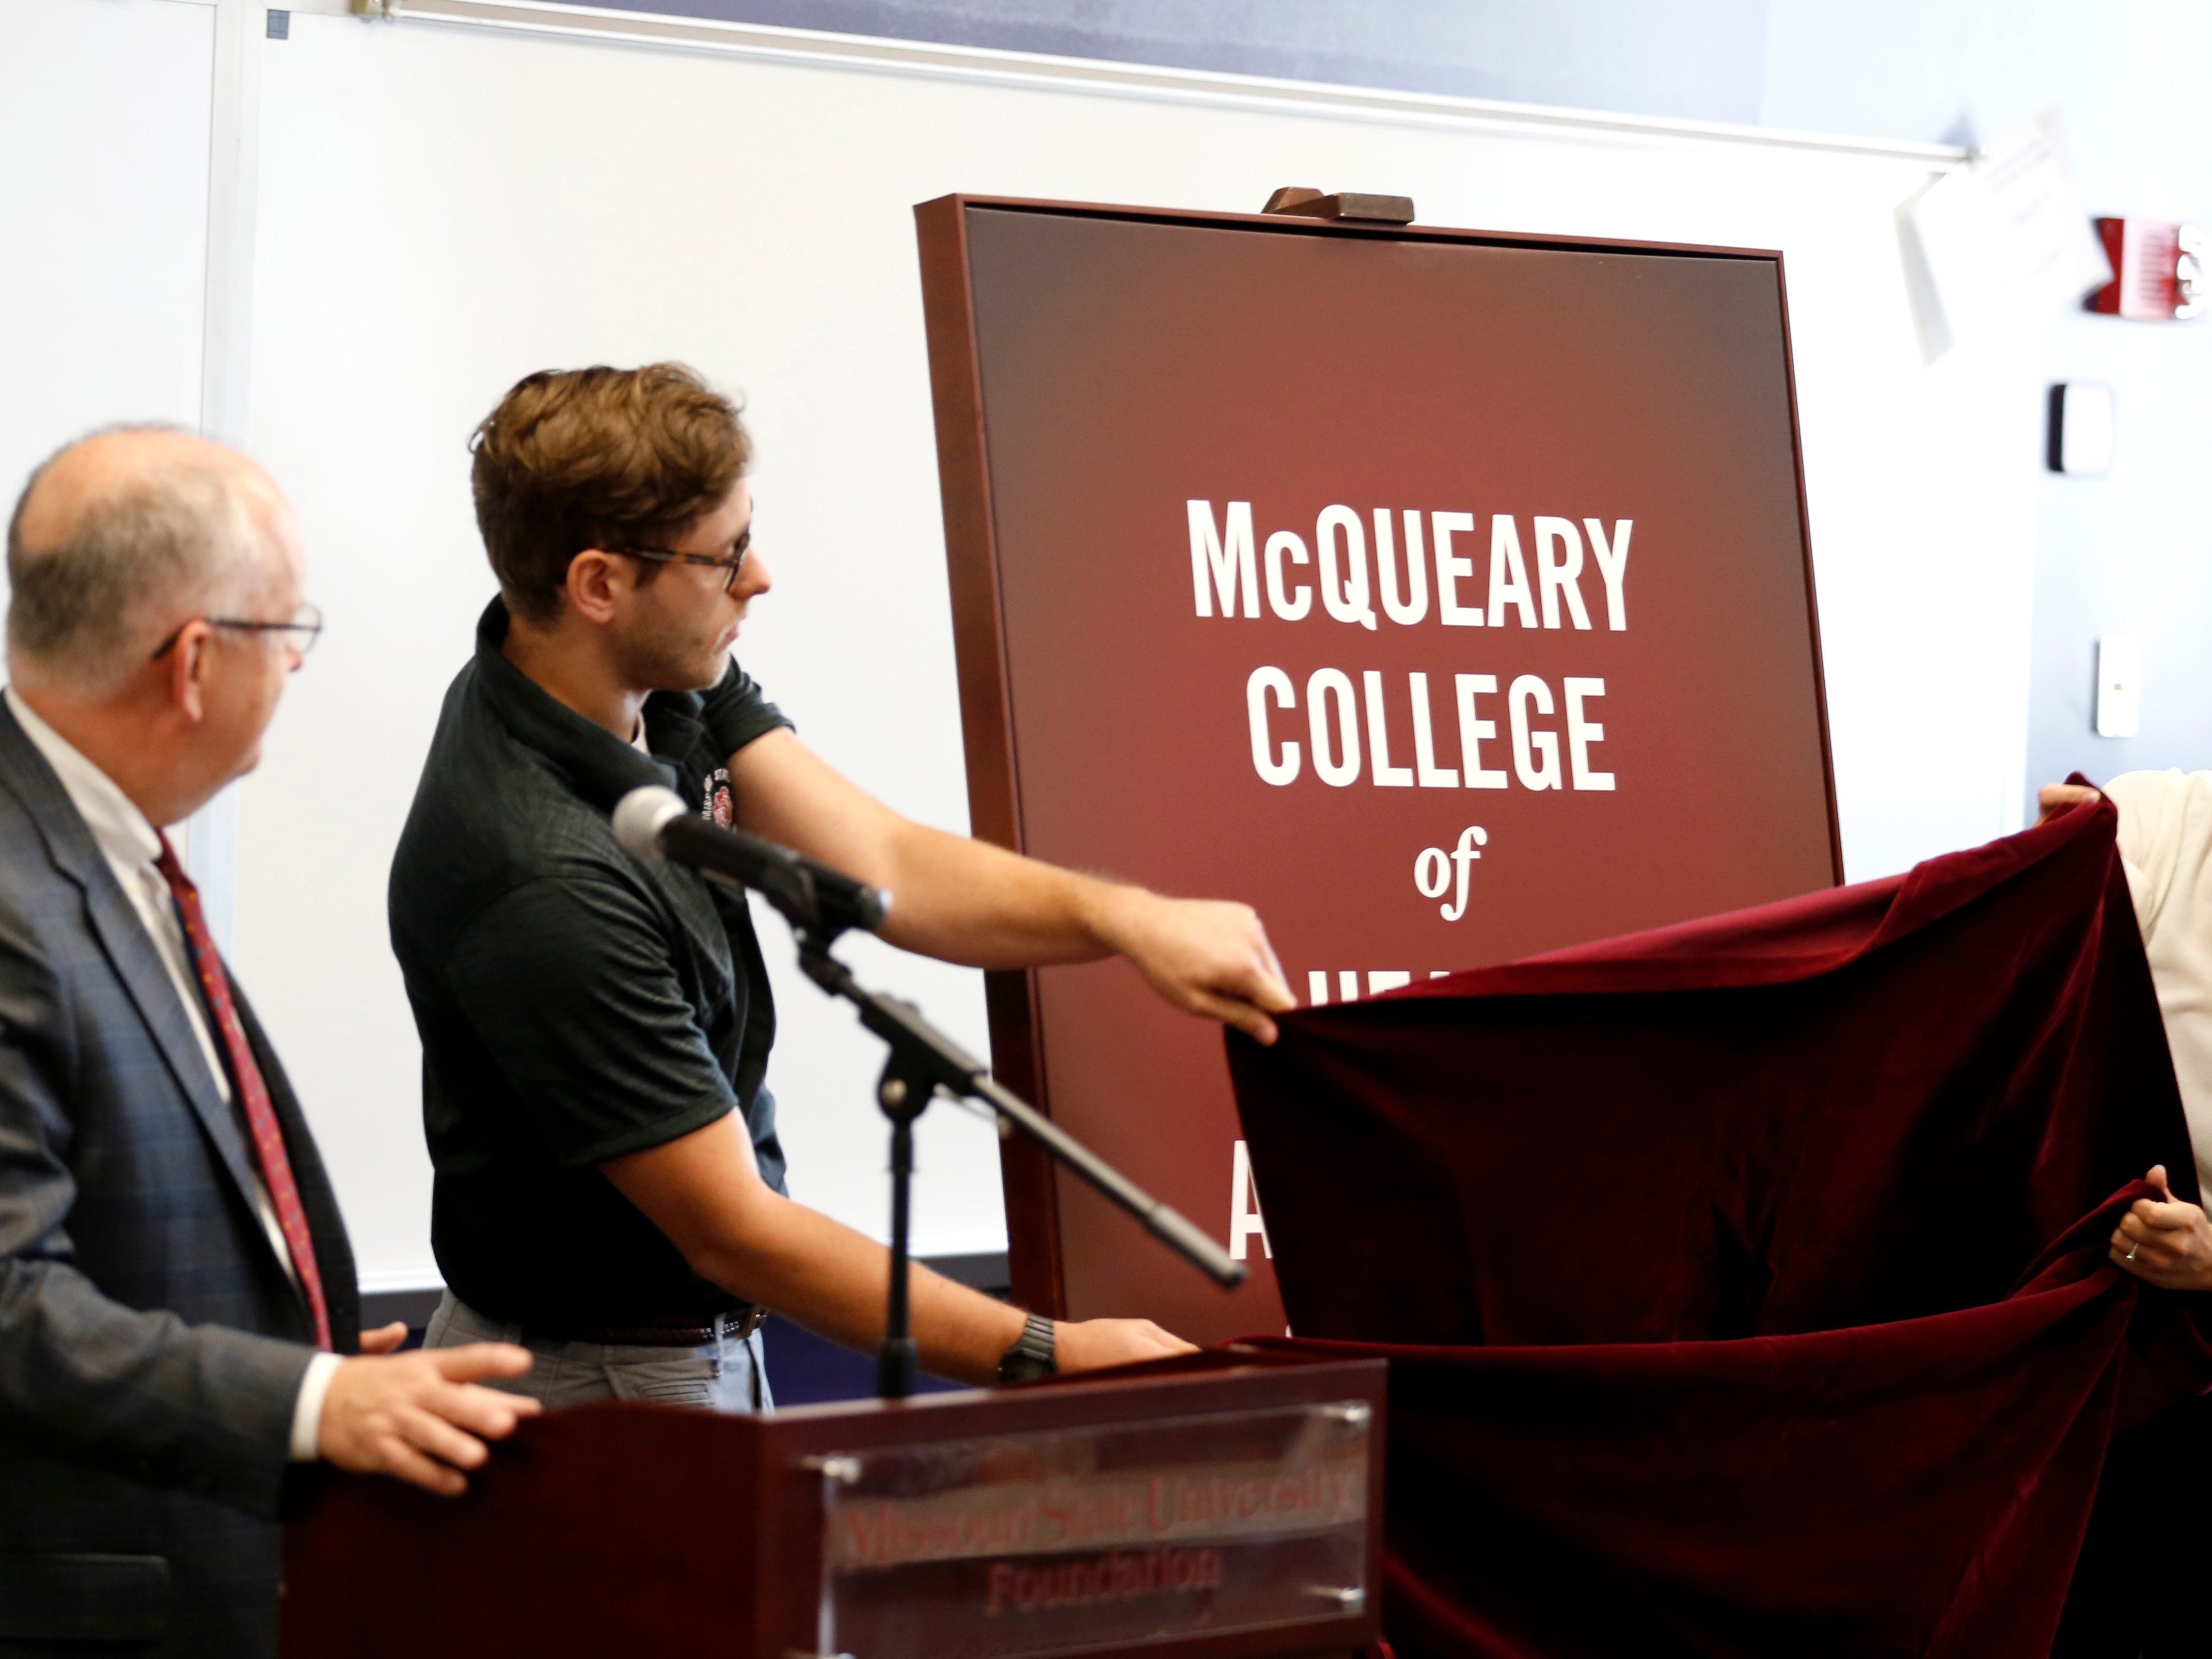 Missouri State unveils the name change of the College of Health and Human Services to the McQueary College of Health and Human Services on Tuesday Oct. 2, 2018.